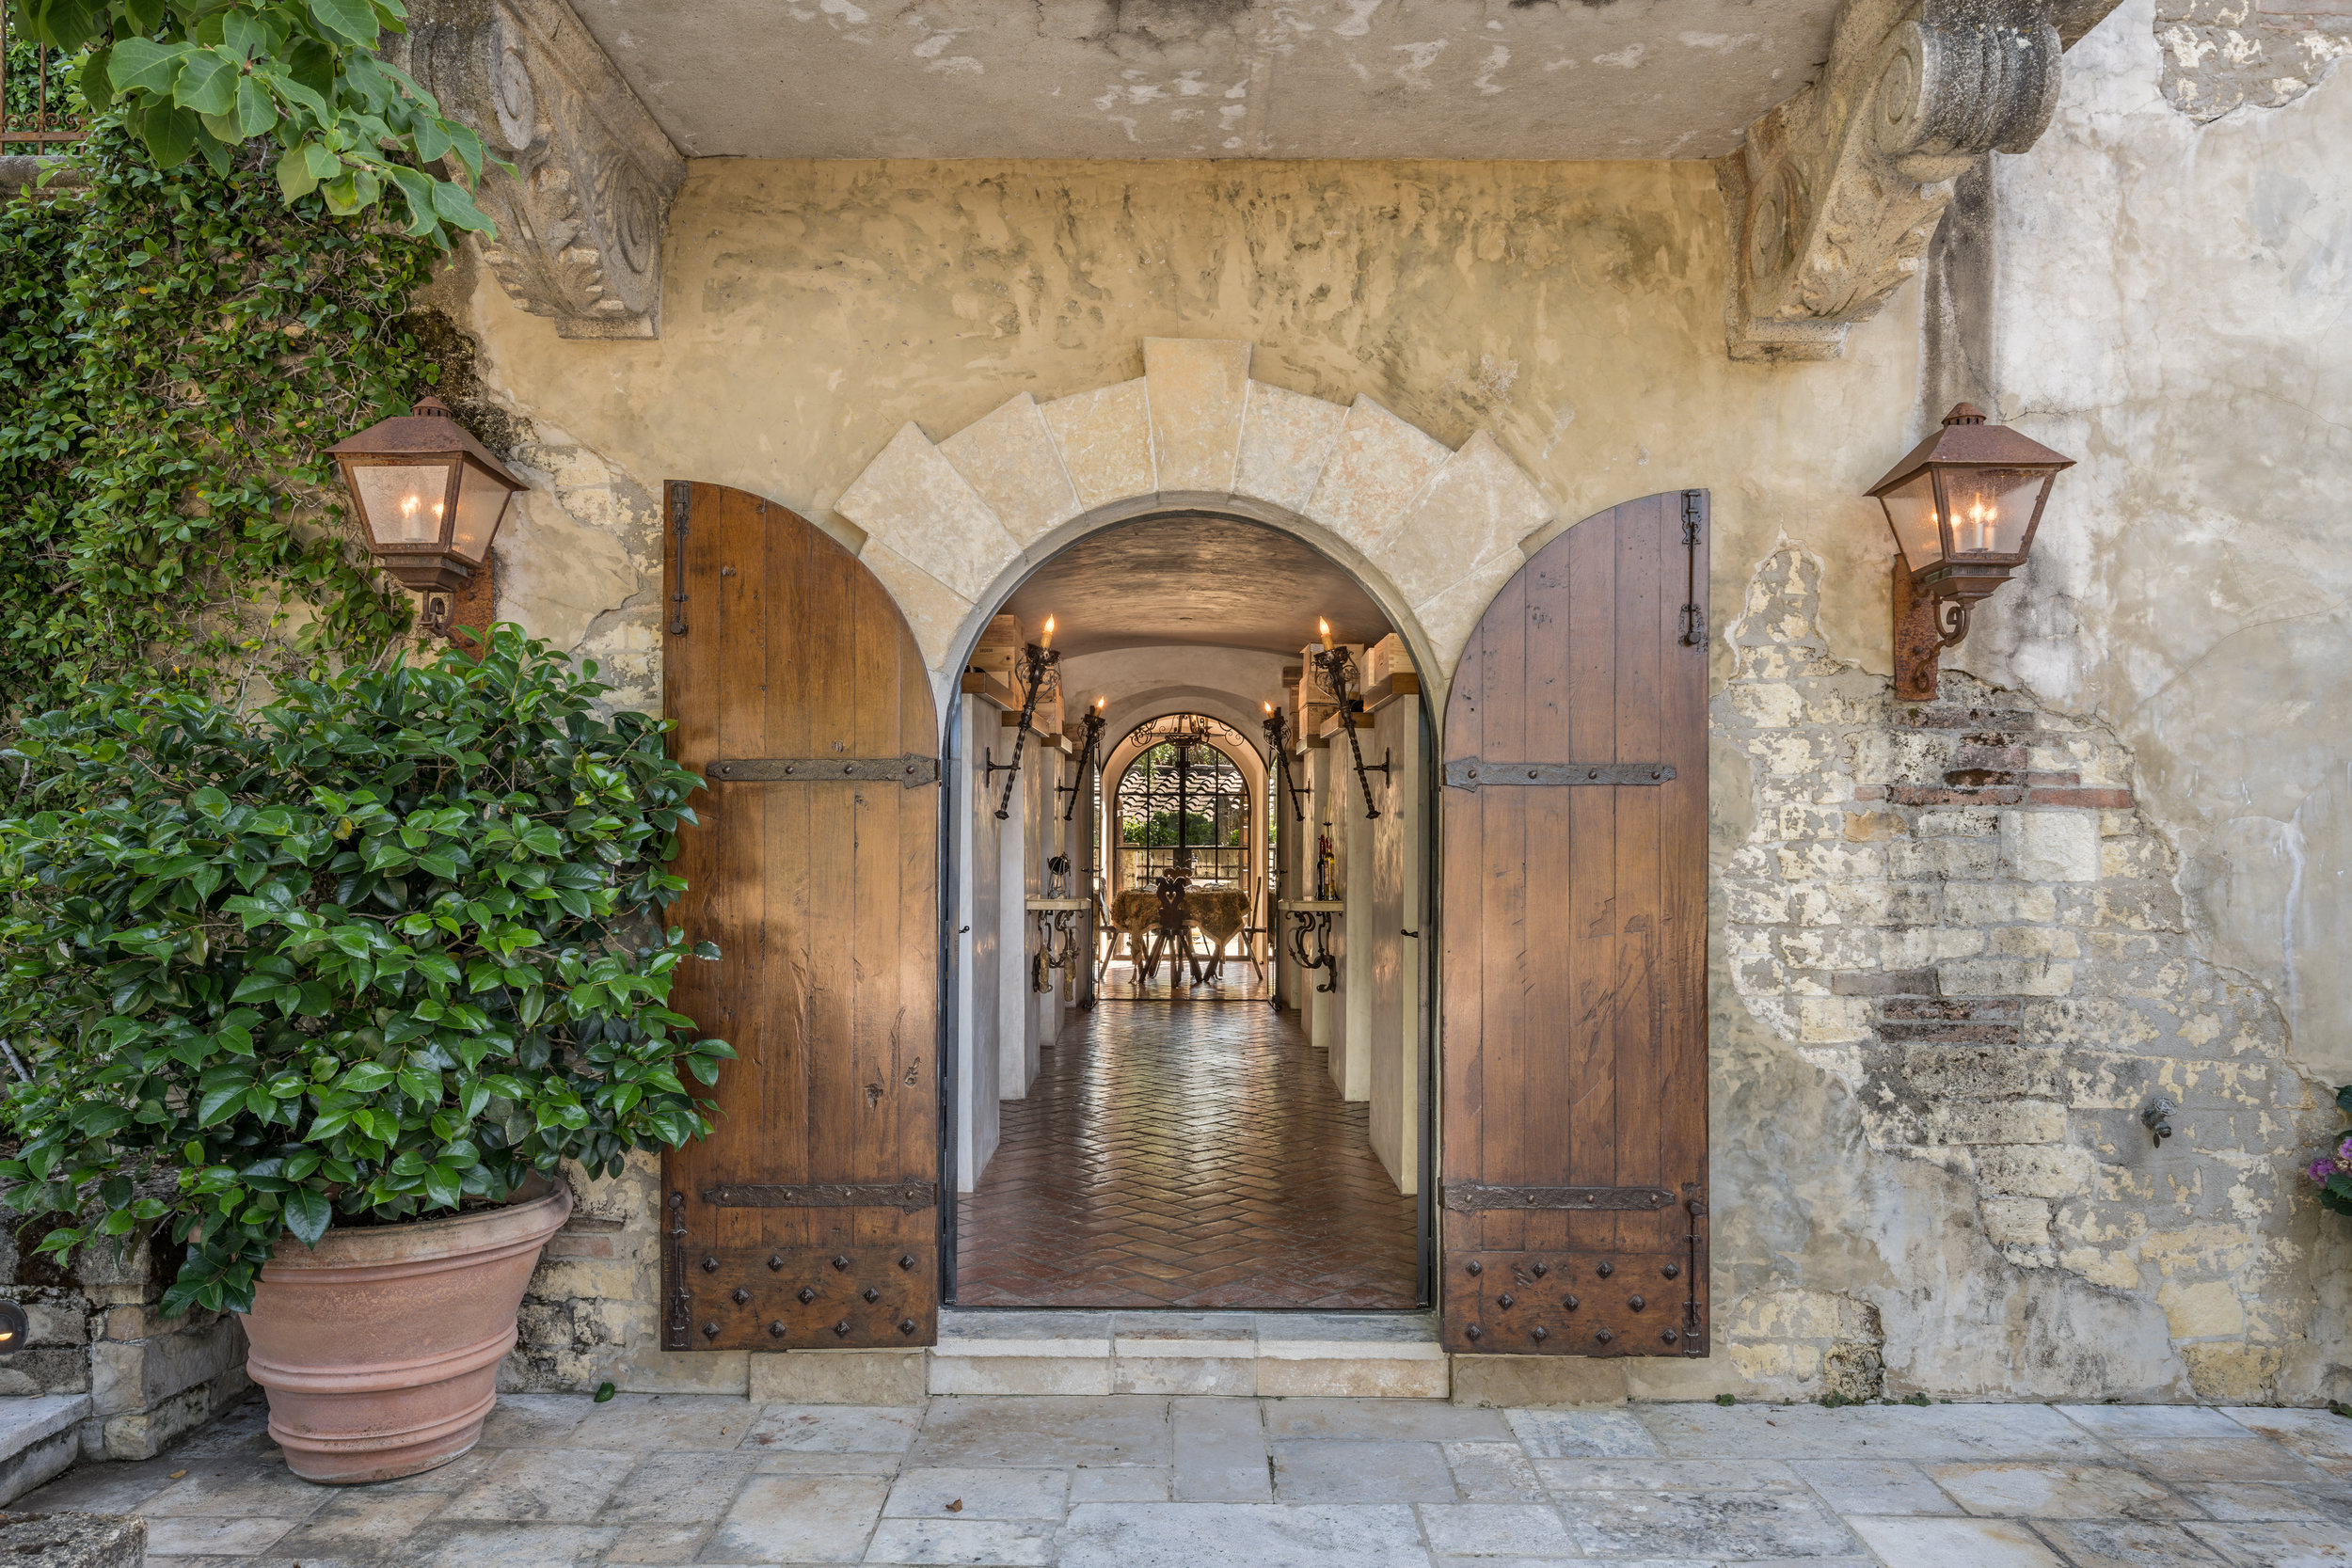 Entrance to the wine cellar and tasting room.